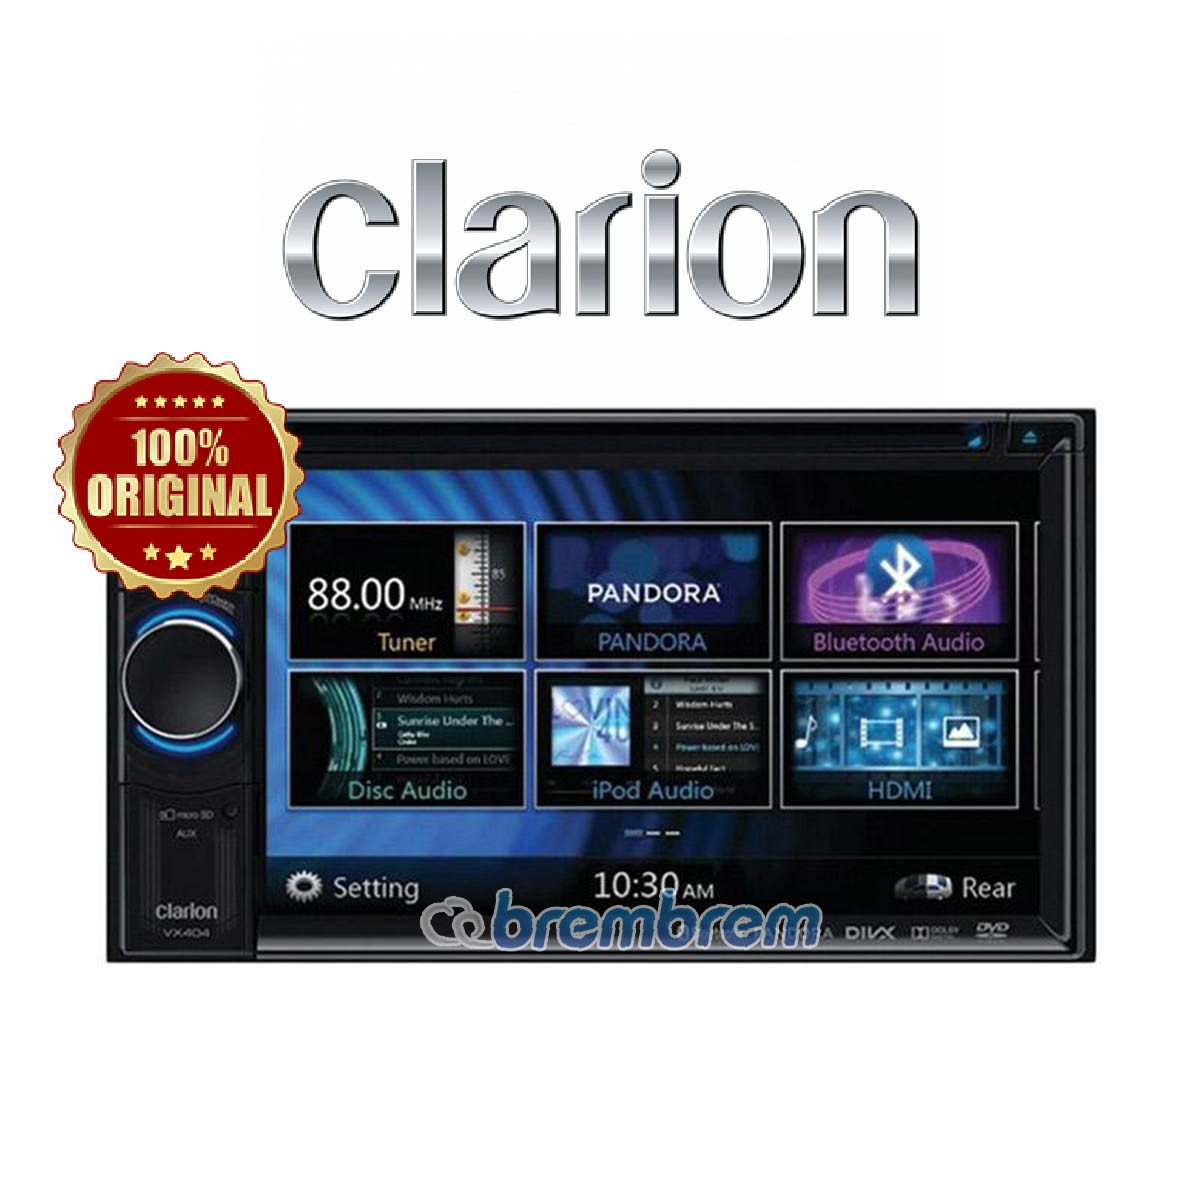 CLARION NX 404 A (GPS NAVIGASI) - HEAD UNIT DOUBLE DIN